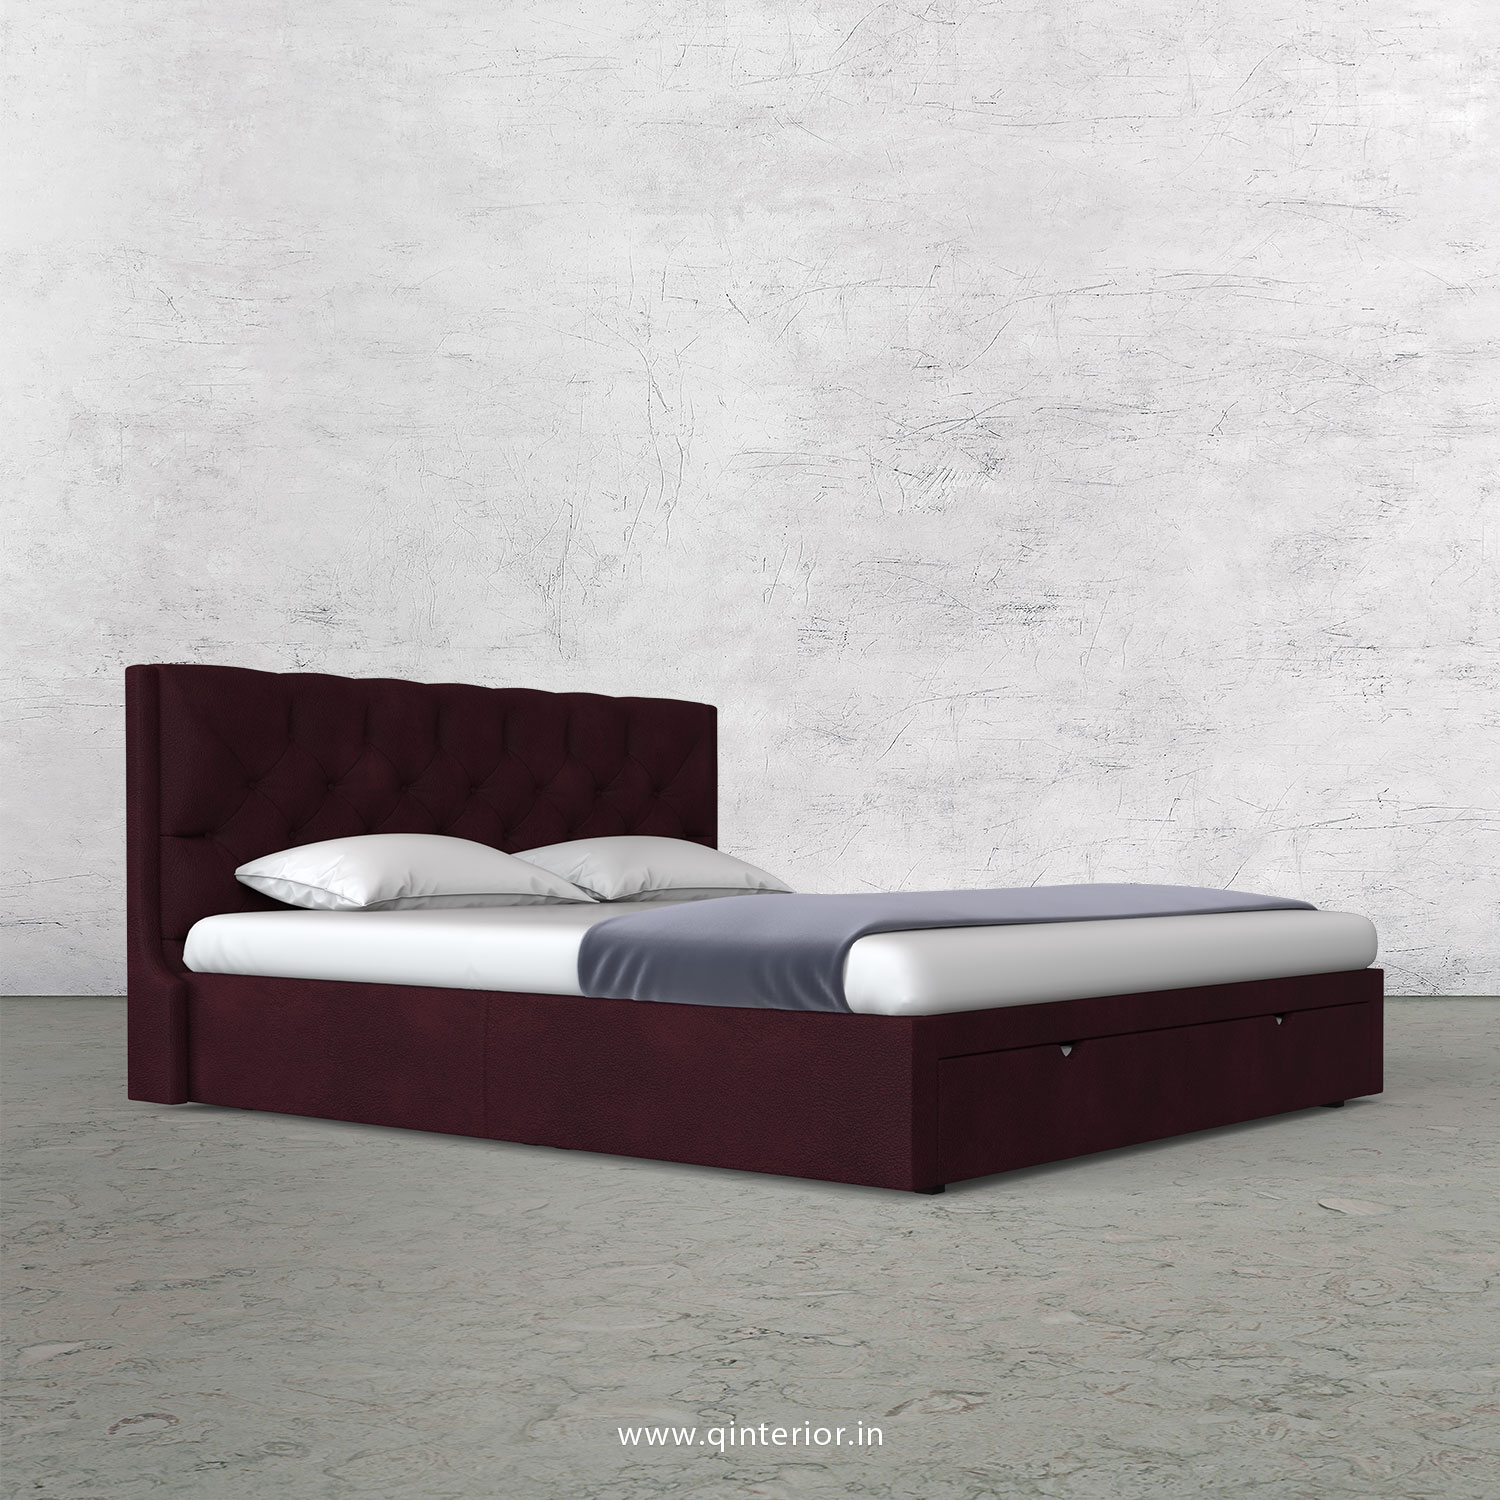 Scorpius Queen Storage Bed in Fab Leather Fabric - QBD001 FL12